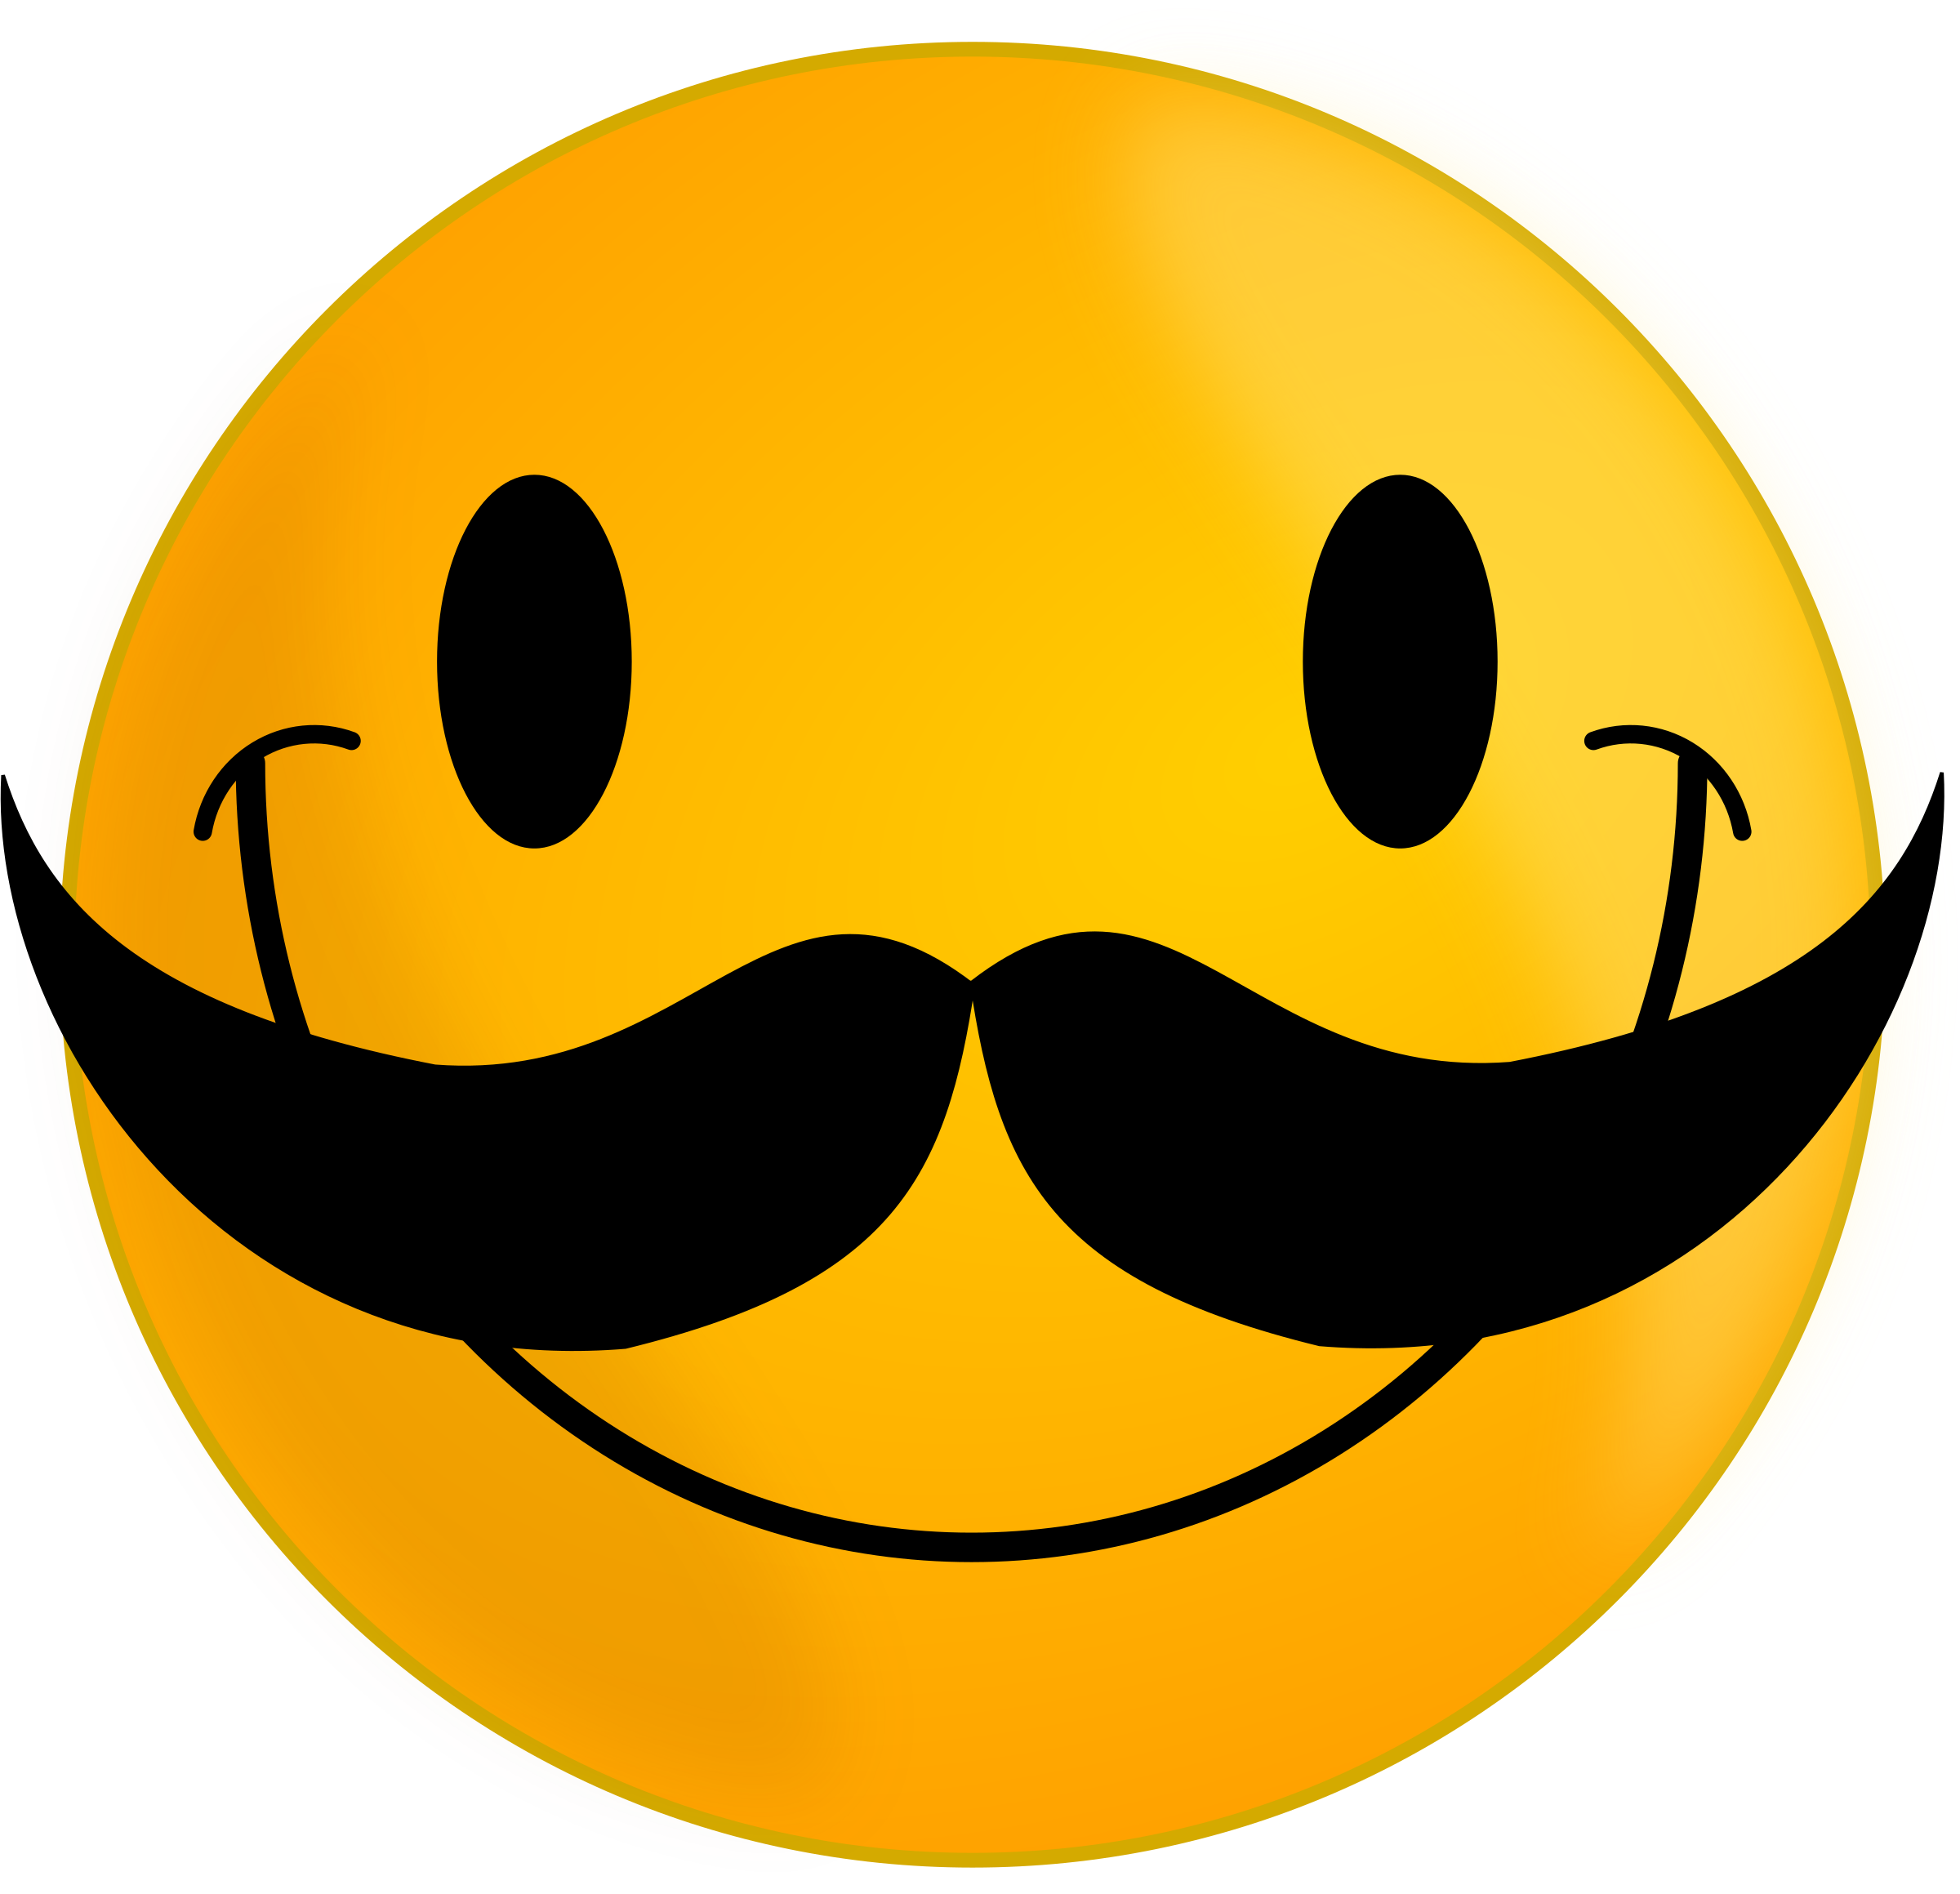 smiley-with-mustache-vector-clipart